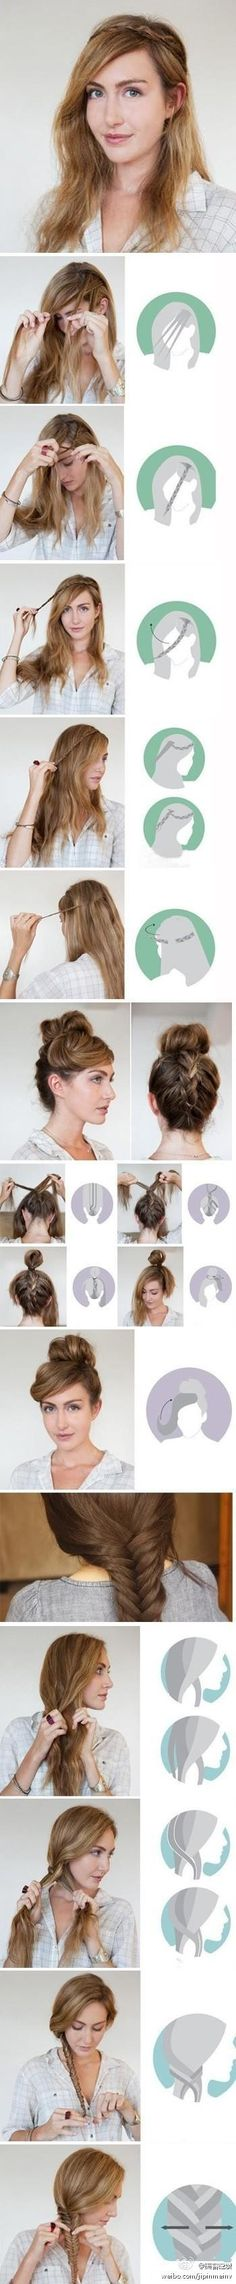 fancy braided hairstyles